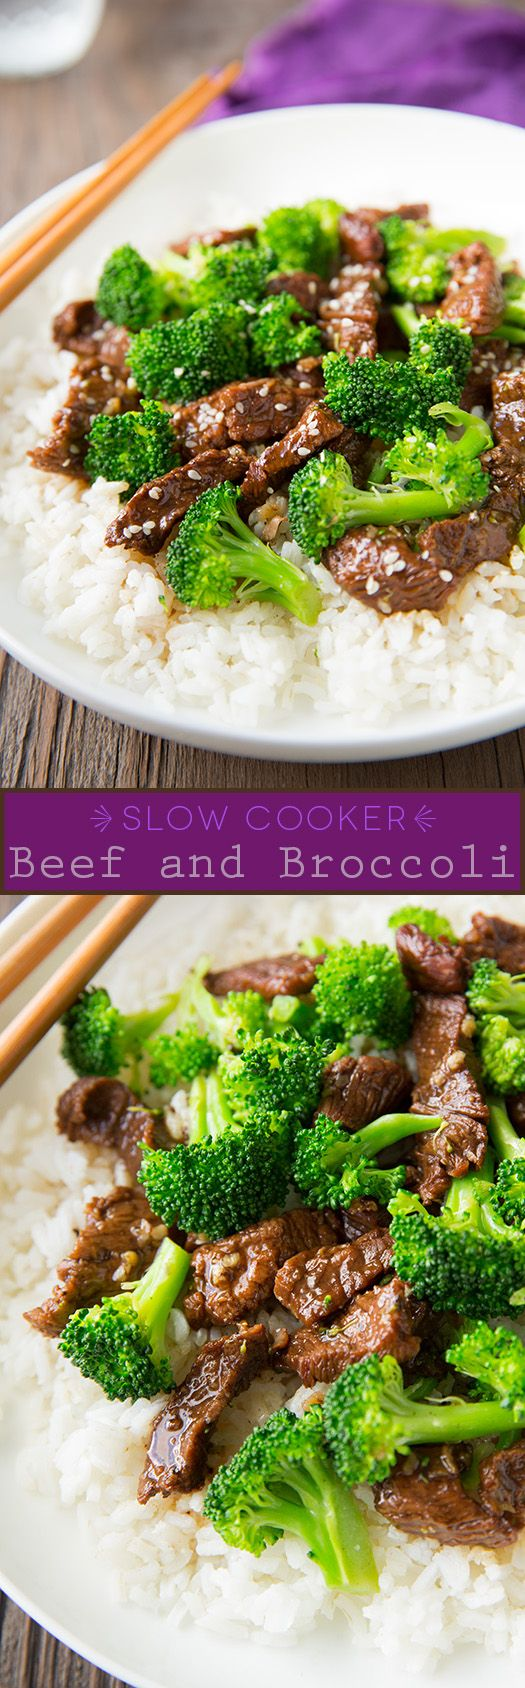 Slow Cooker Beef and Broccoli #delicious #Amazing #healthy_food #health #food #diet #fresh #HealthyFood #recipe #salad #tasty #colorful